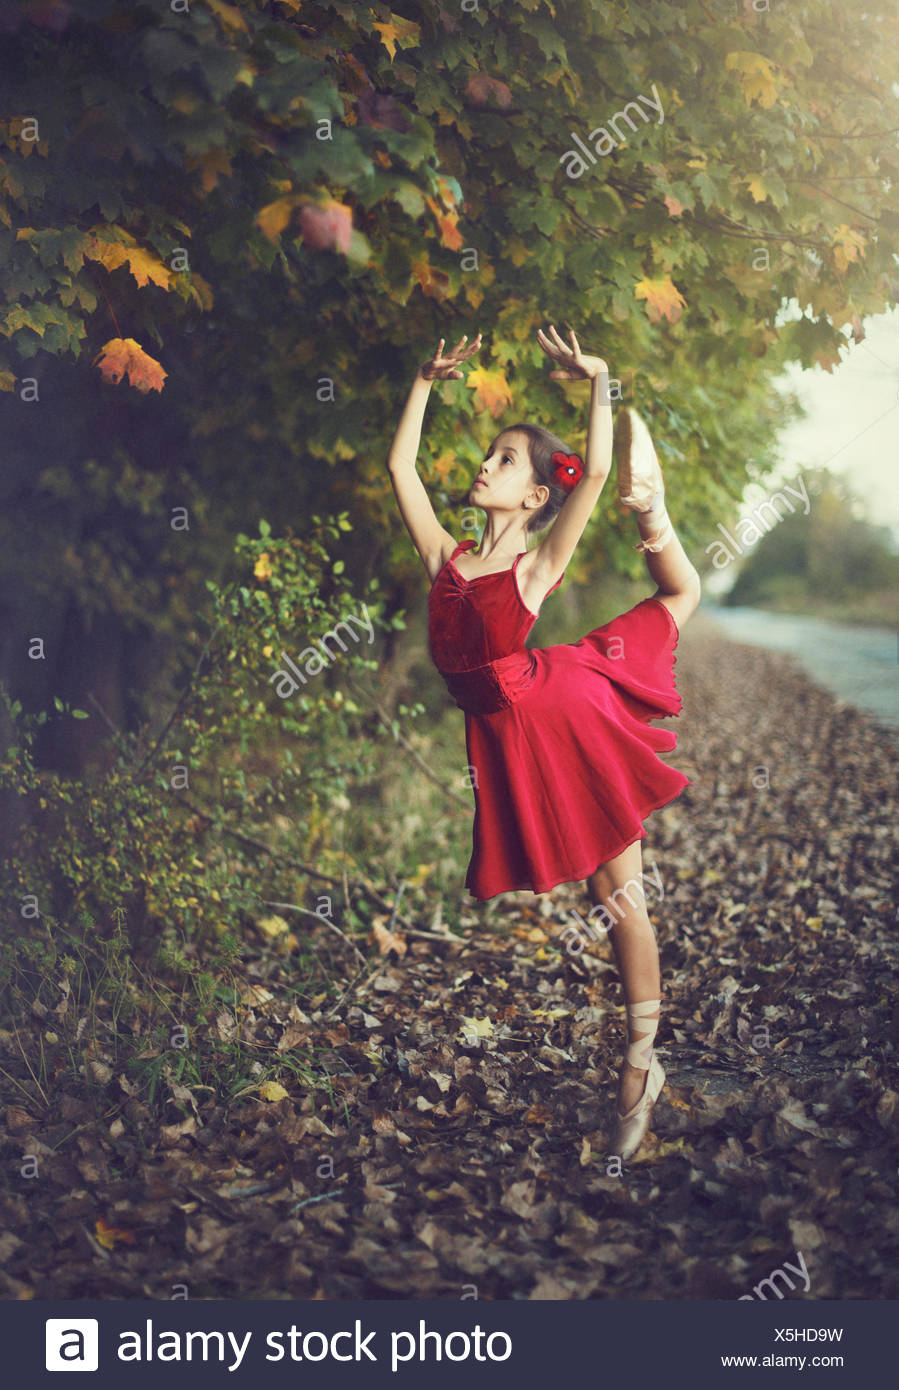 Girl doing ballet outdoors in red dress - Stock Image